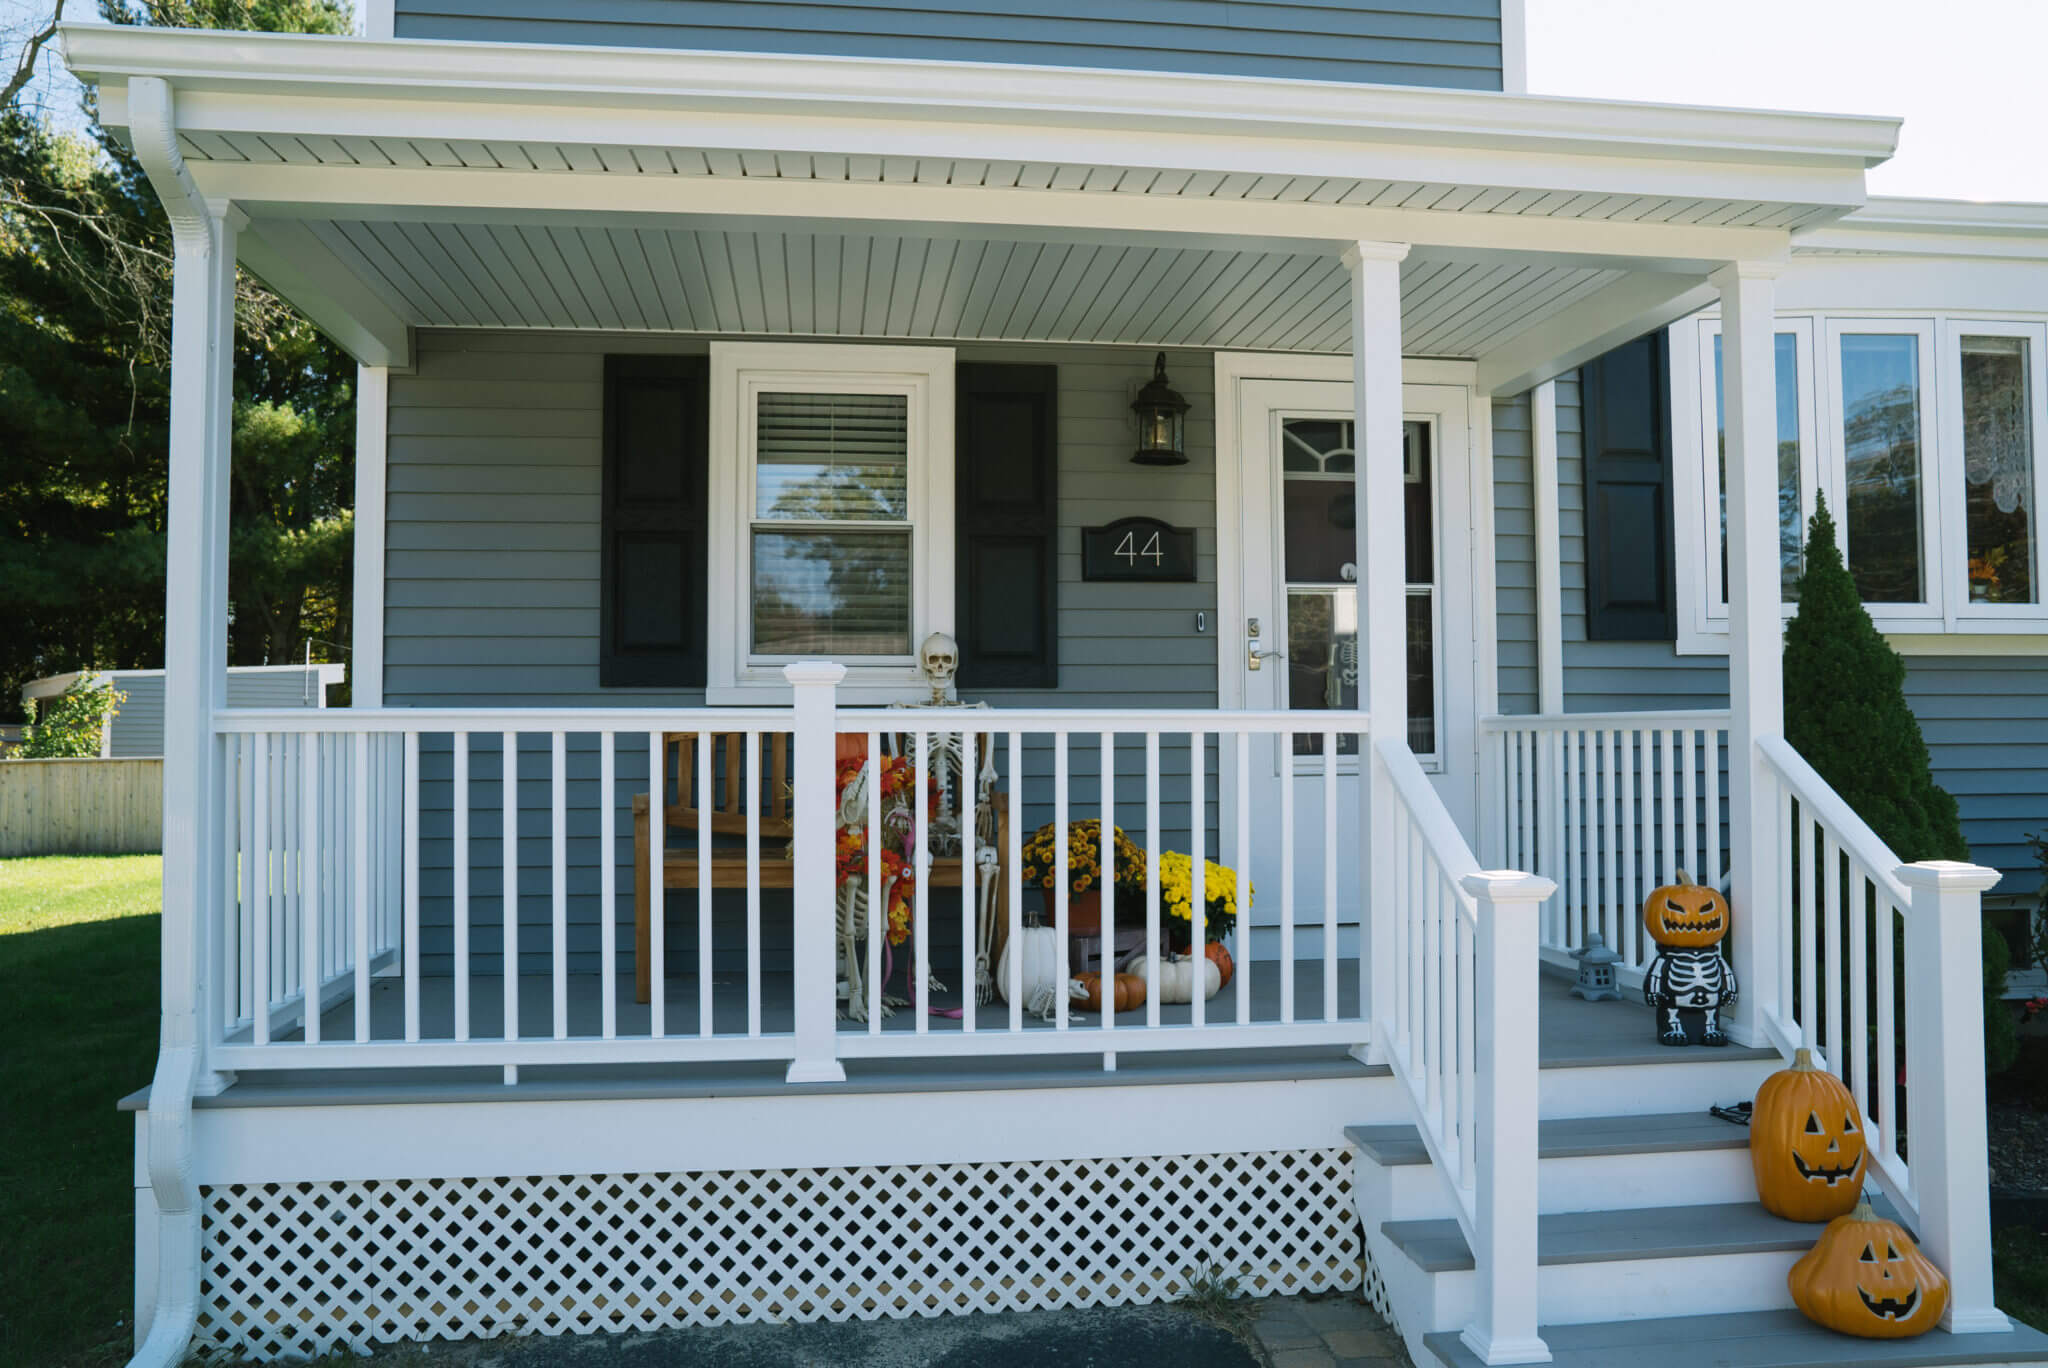 Remodeled RI Home Exterior with Mystic Ovation Clapboard Siding, New Windows, and Porch